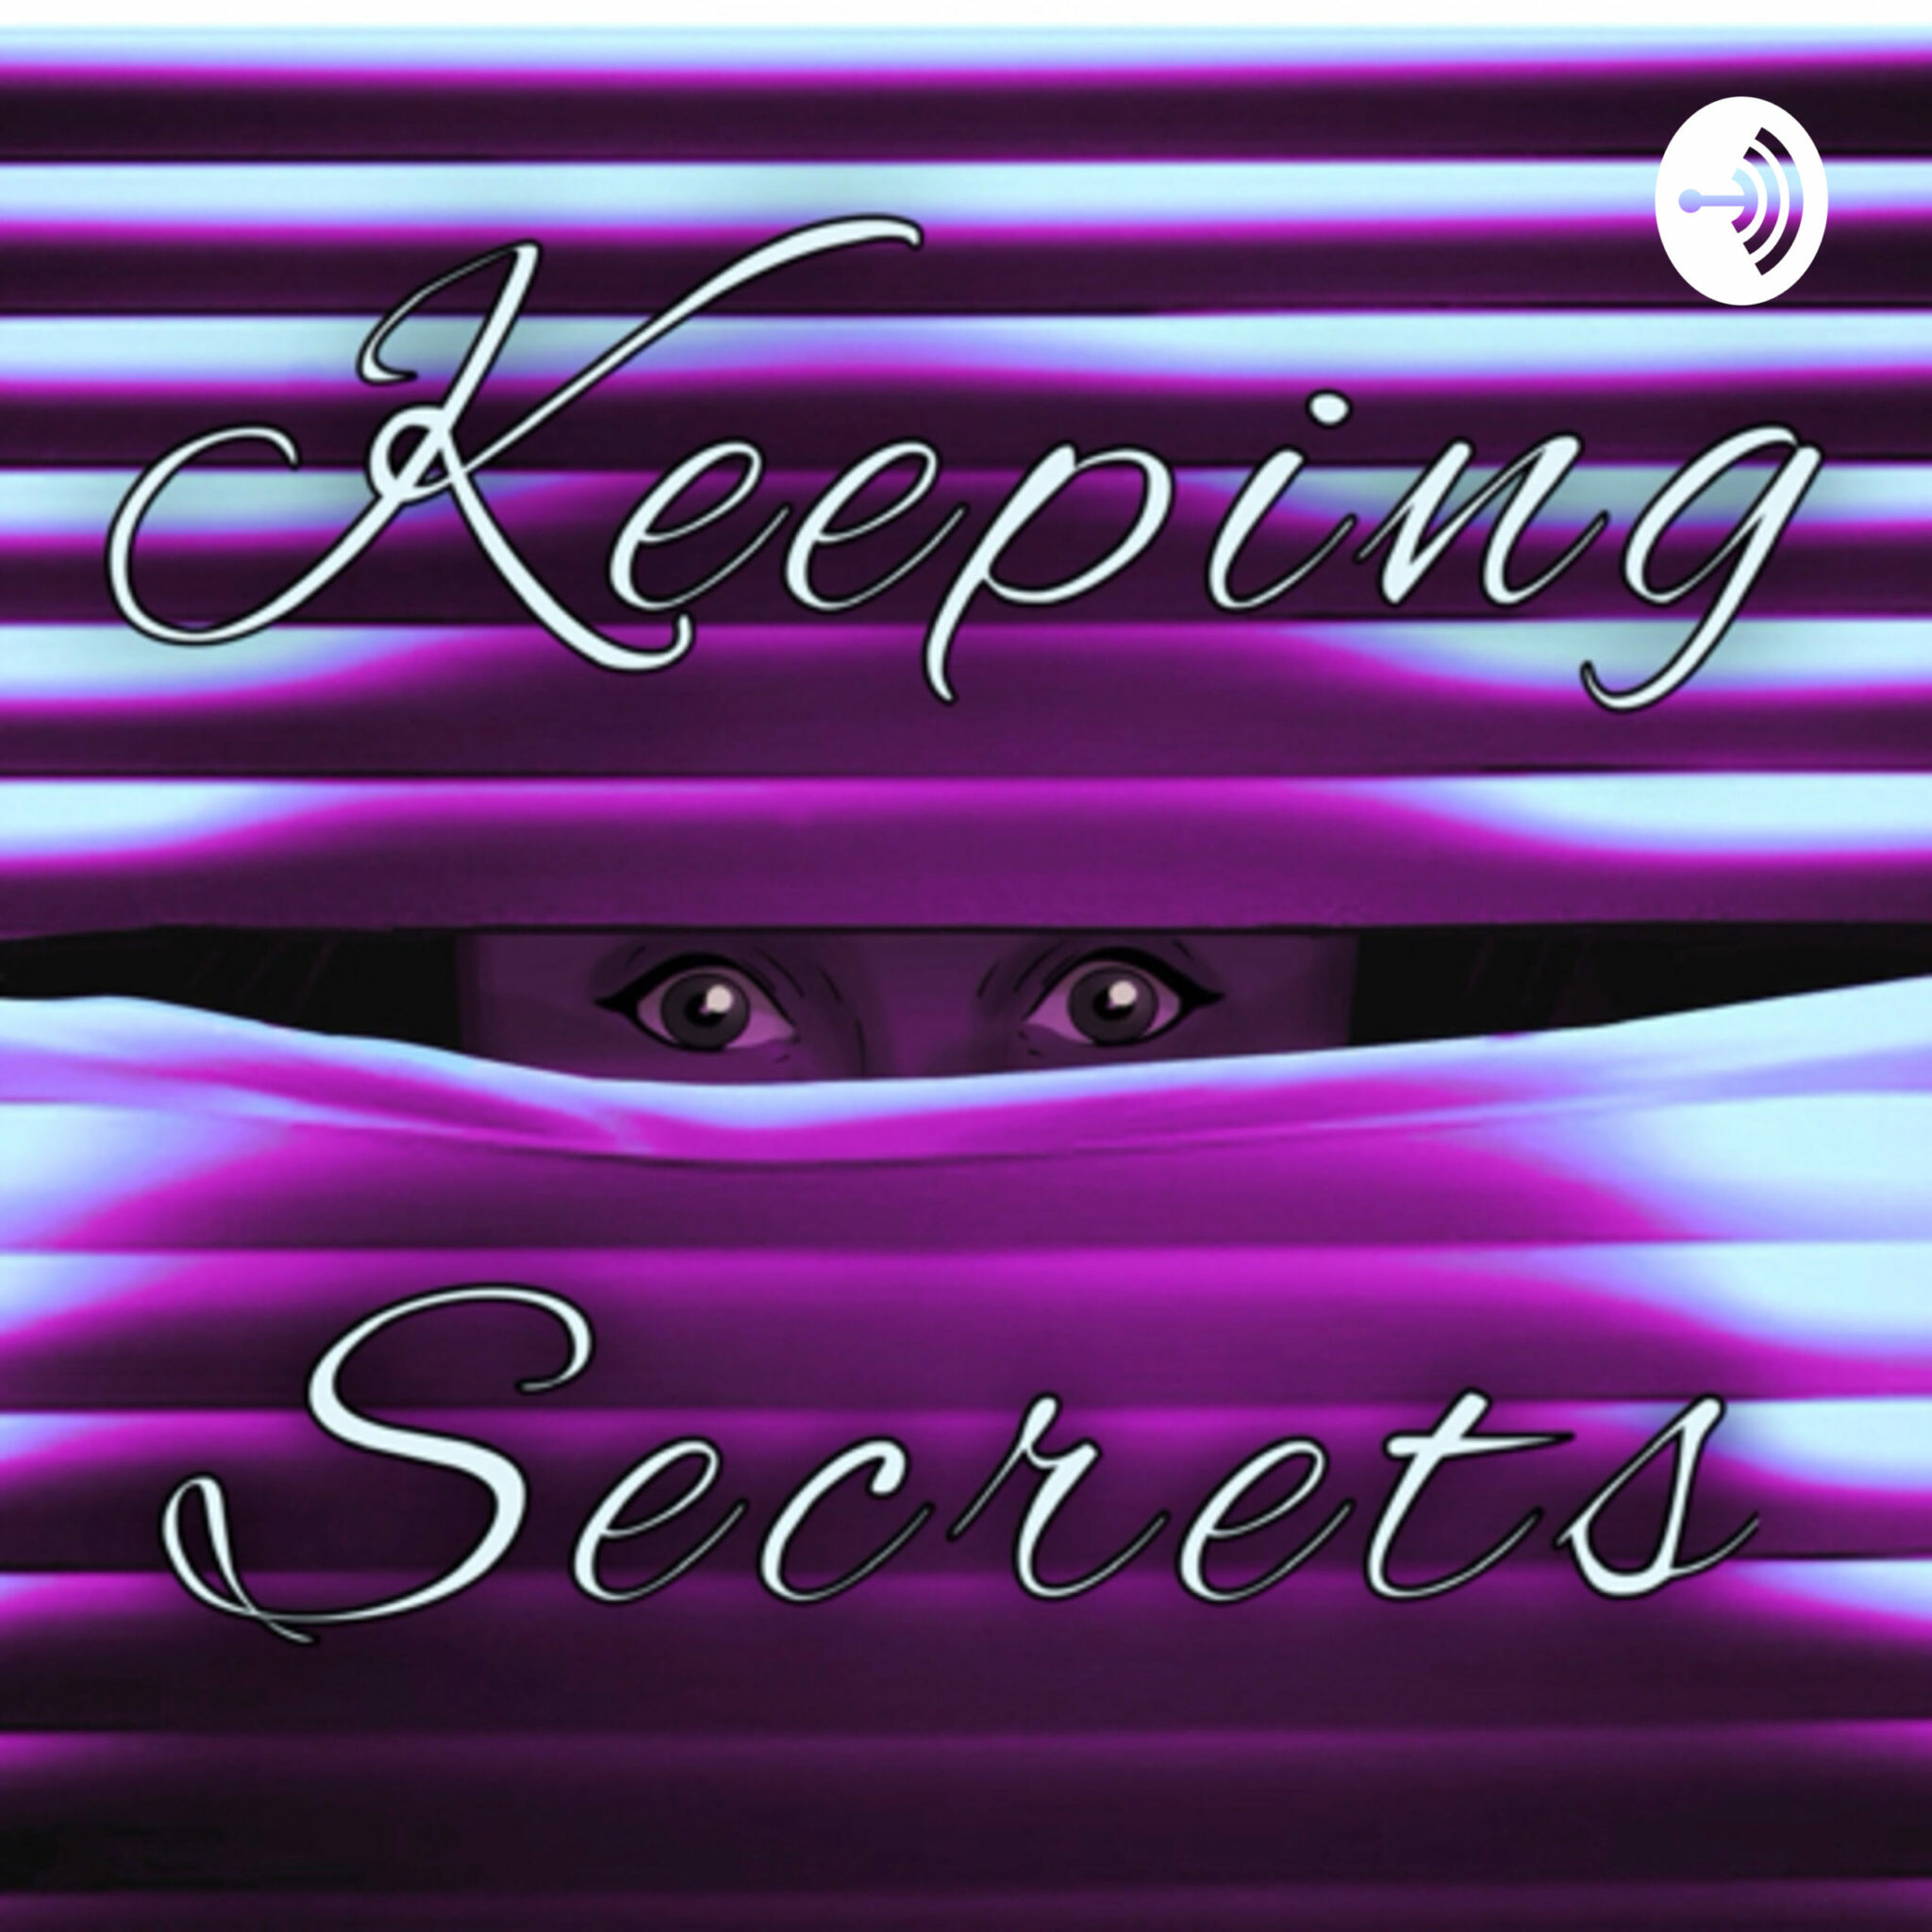 It's a very special, spooooky bonus episode of Keeping Secrets Podcast! We dug some skeletons out of our closet and reminisce about a wild Halloween party at a swinger club. We were stalked by clowns, while Mel was made a sexy offer she couldn't refuse. The second segment was even more terrifying! We called up the ghosts of some truly frightful Hotwife horror stories that will make your skin crawl!